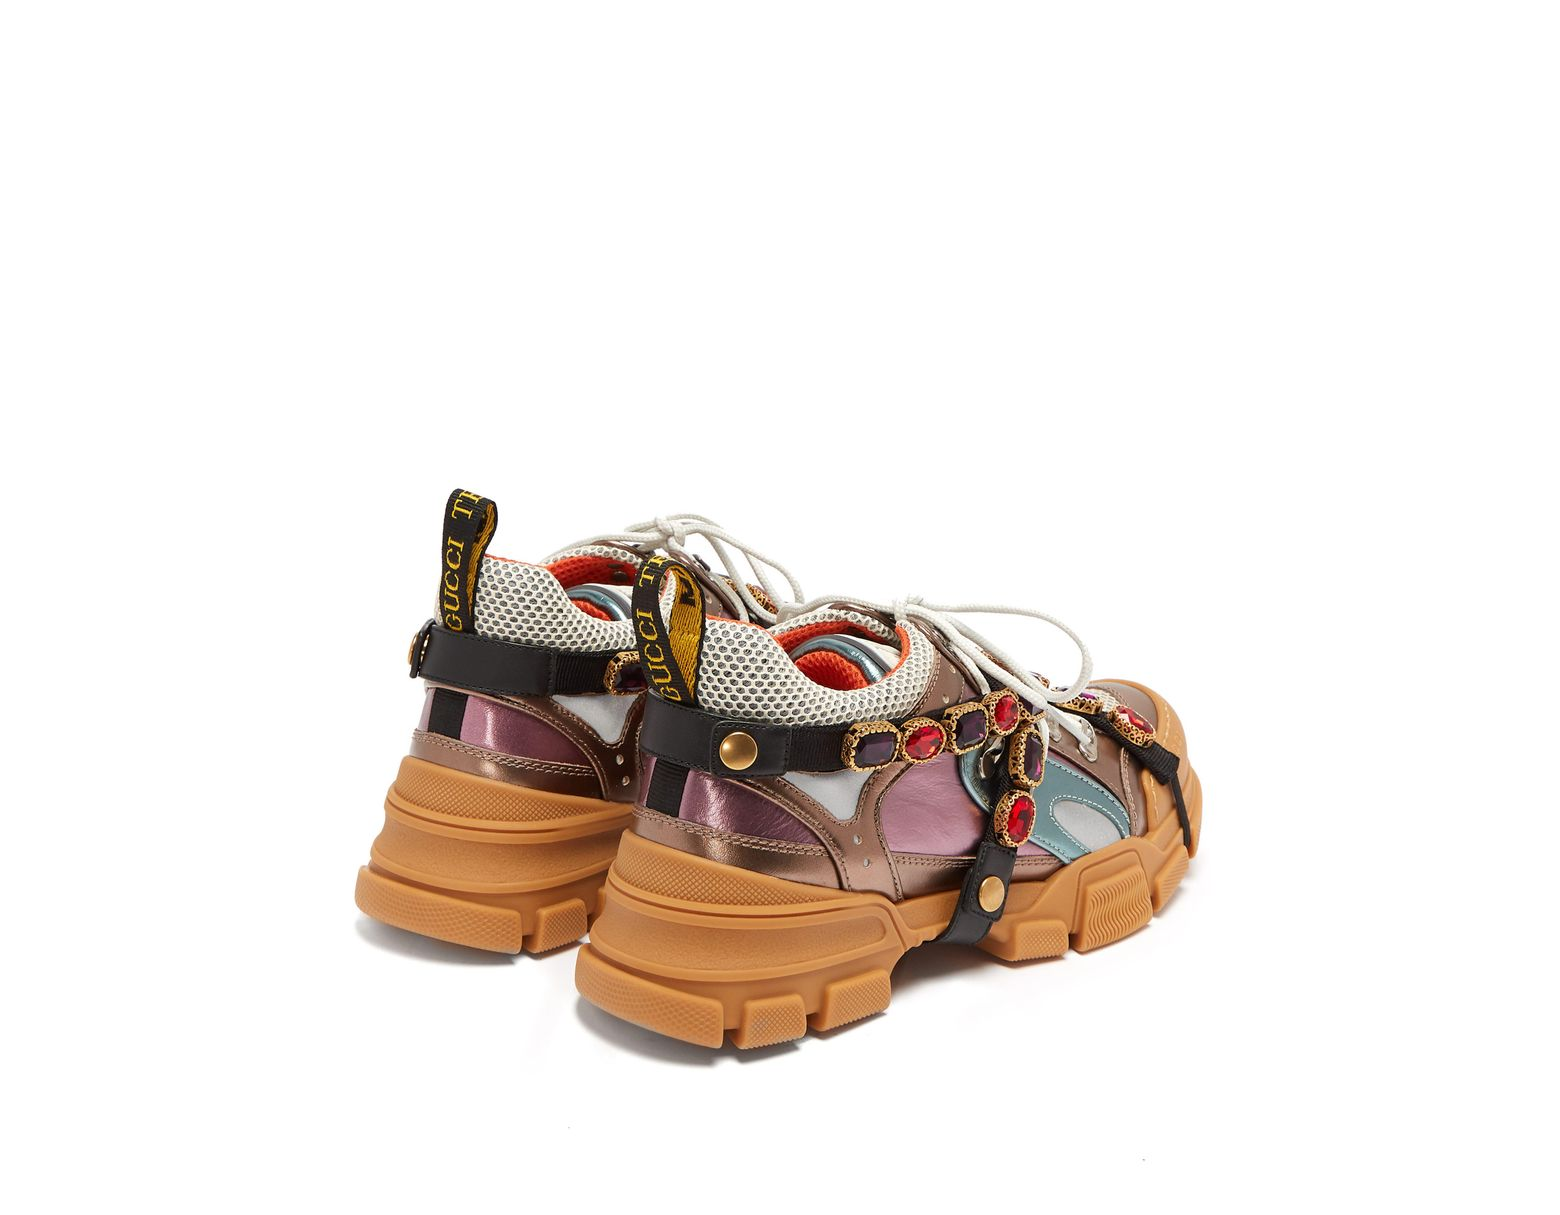 7d3c71a06 Gucci Flashtrek Metallic Leather Hiker Sneaker With Chain Strap - Save 27%  - Lyst